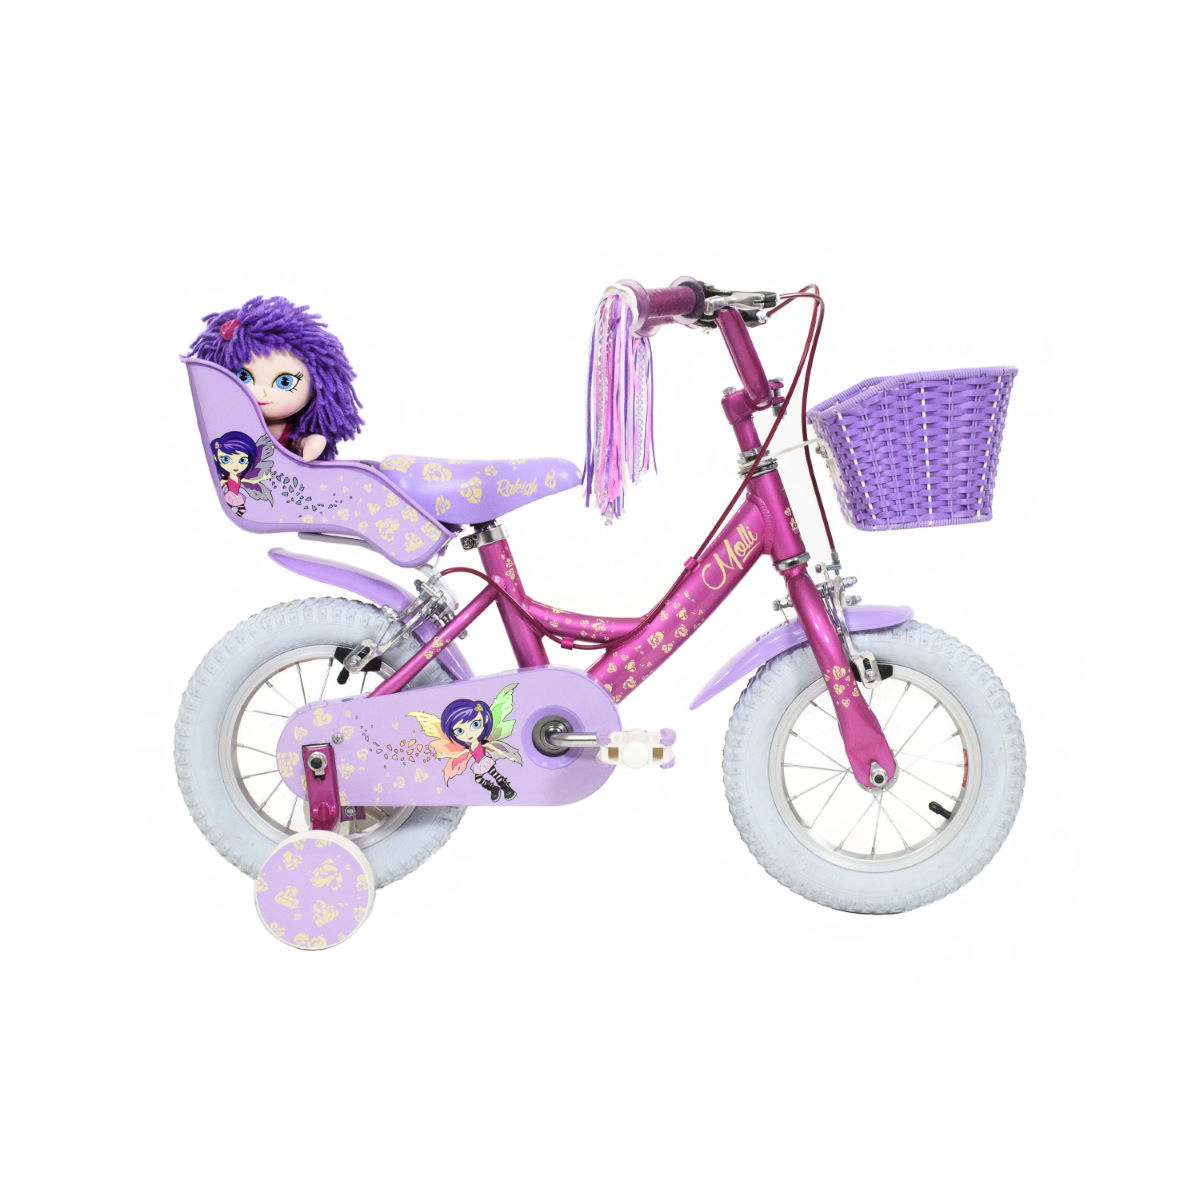 Vélo Enfant Raleigh MOLLI 12 (2016) - 12'' Wheel Stock Bike